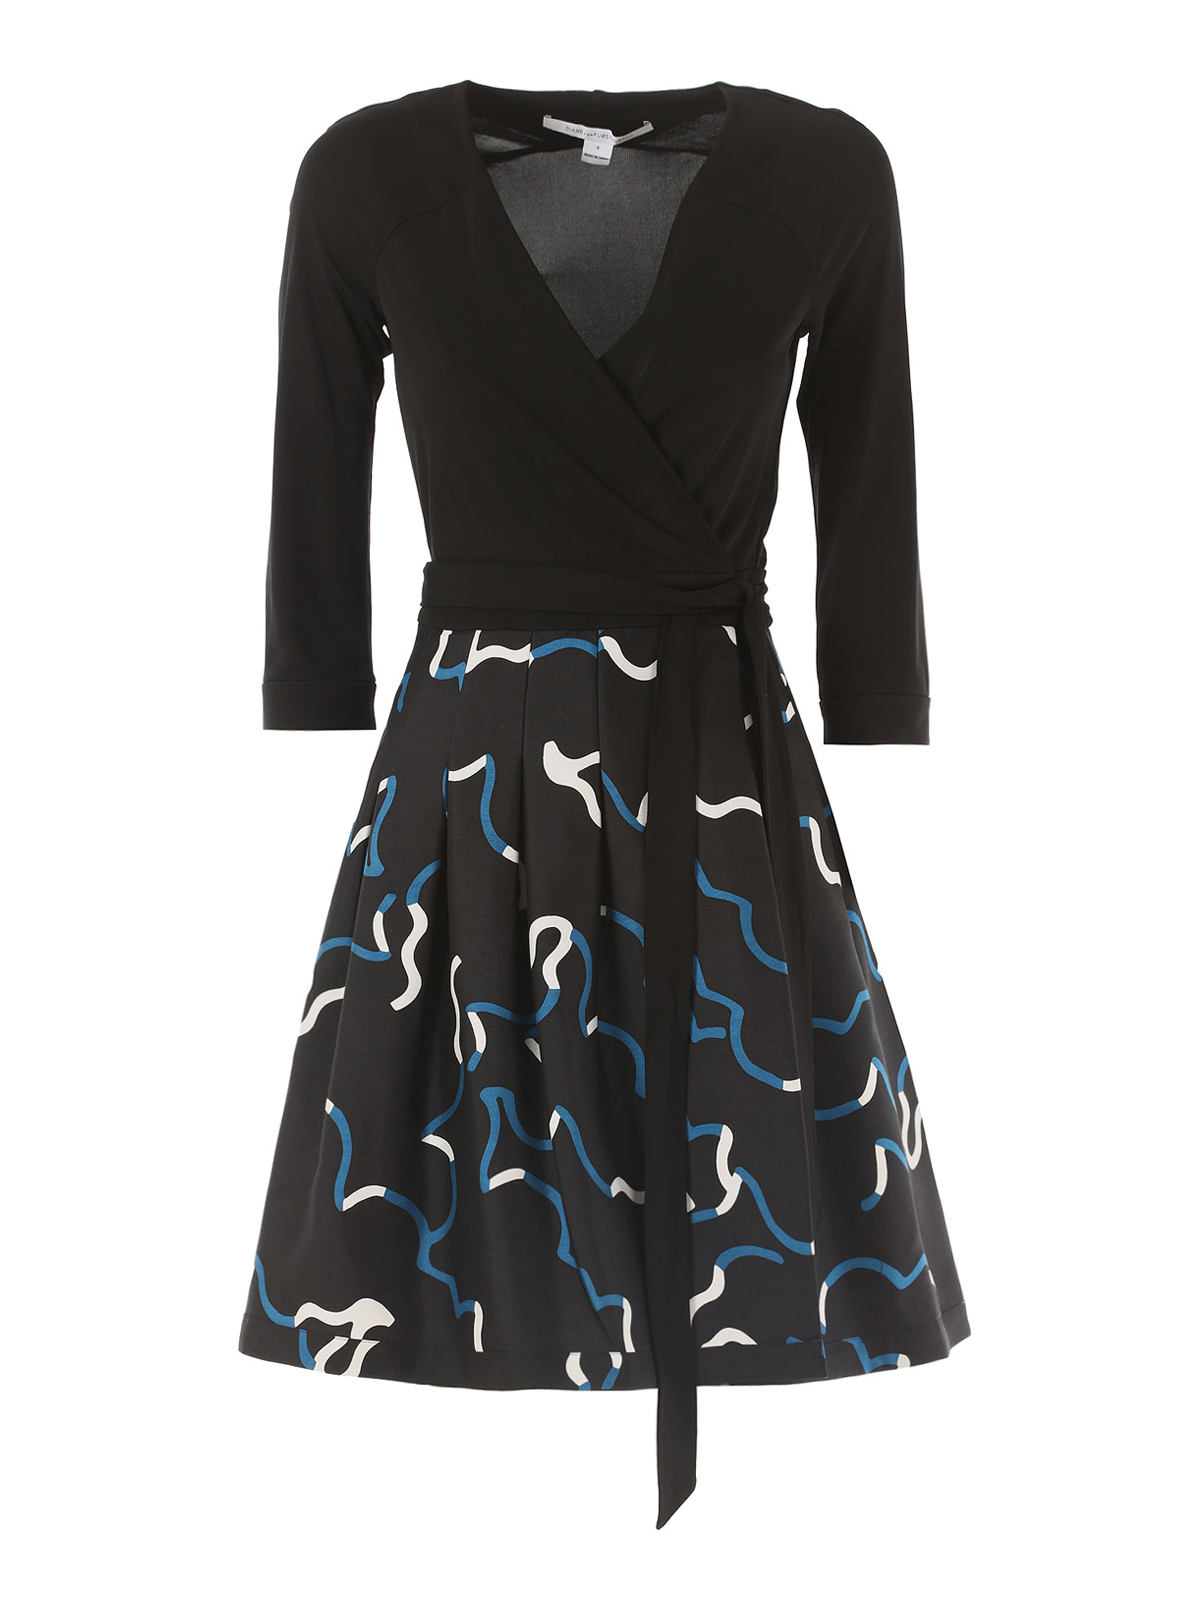 Jewel silk blend wrap dress by diane von furstenberg for Diane von furstenberg clothes